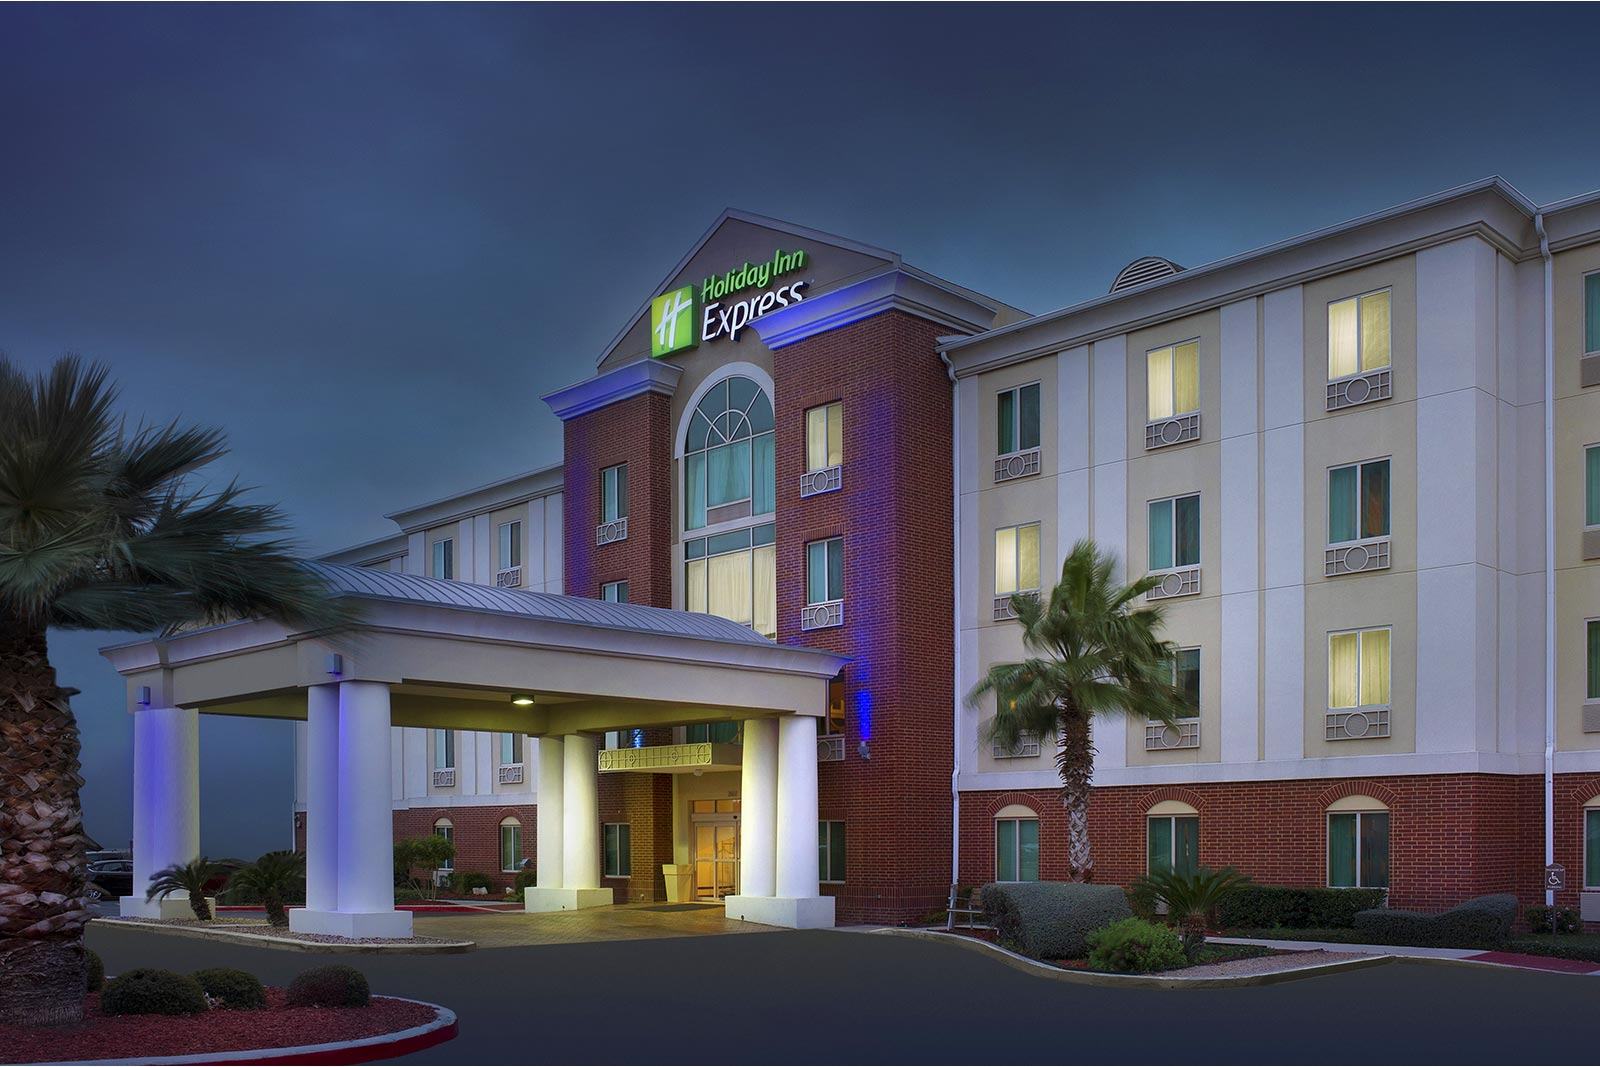 Holiday Inn Express San Antonio